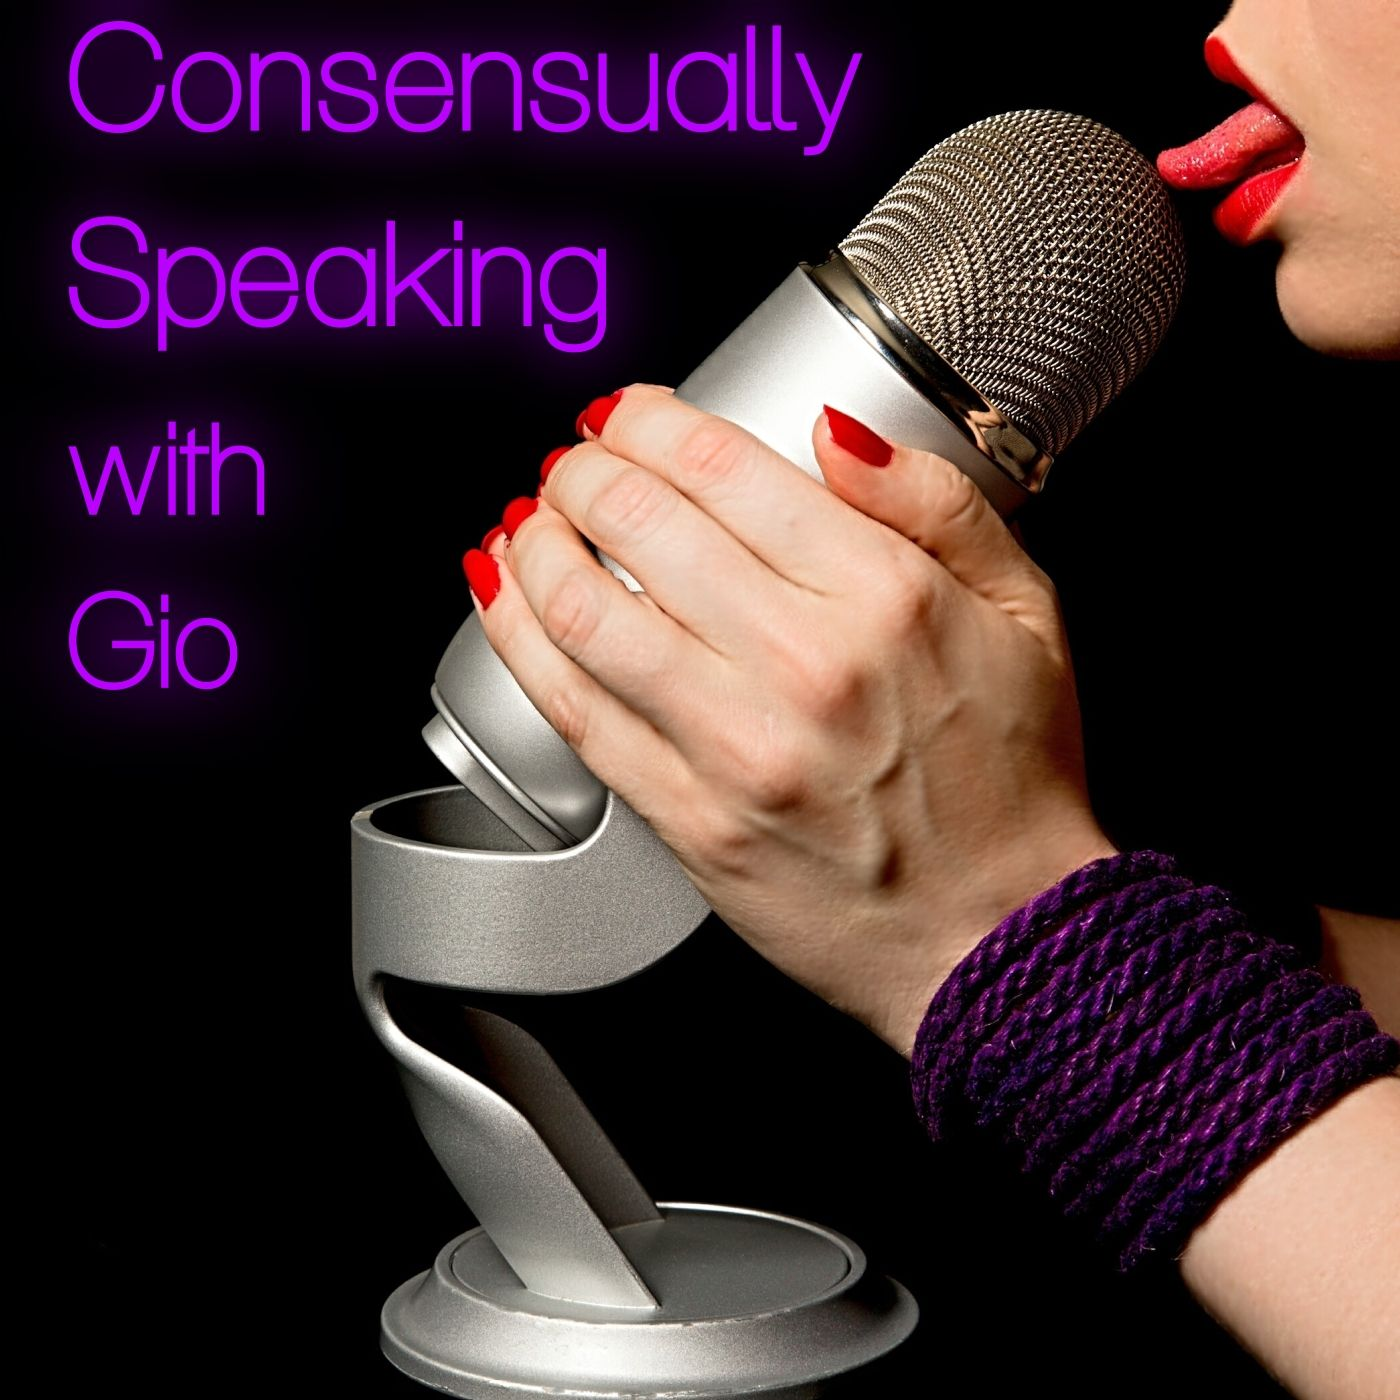 Consensually Speaking with Gio